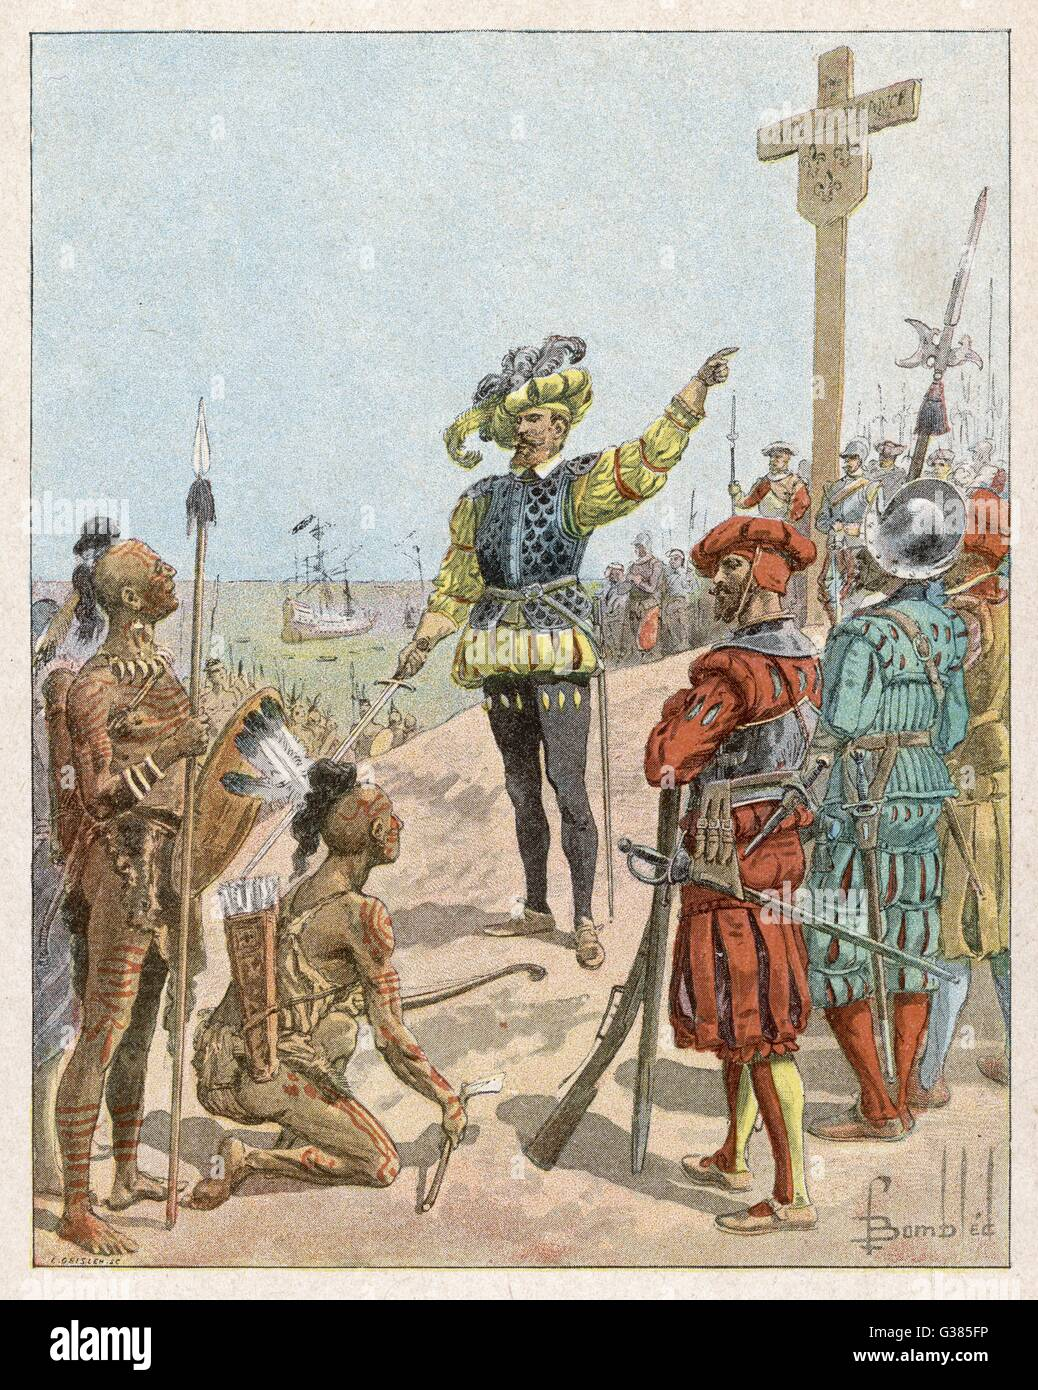 Jacques CARTIER takes  possession of the Baie de  Gaspe in the name of the king  of France       Date: 1534 - Stock Image